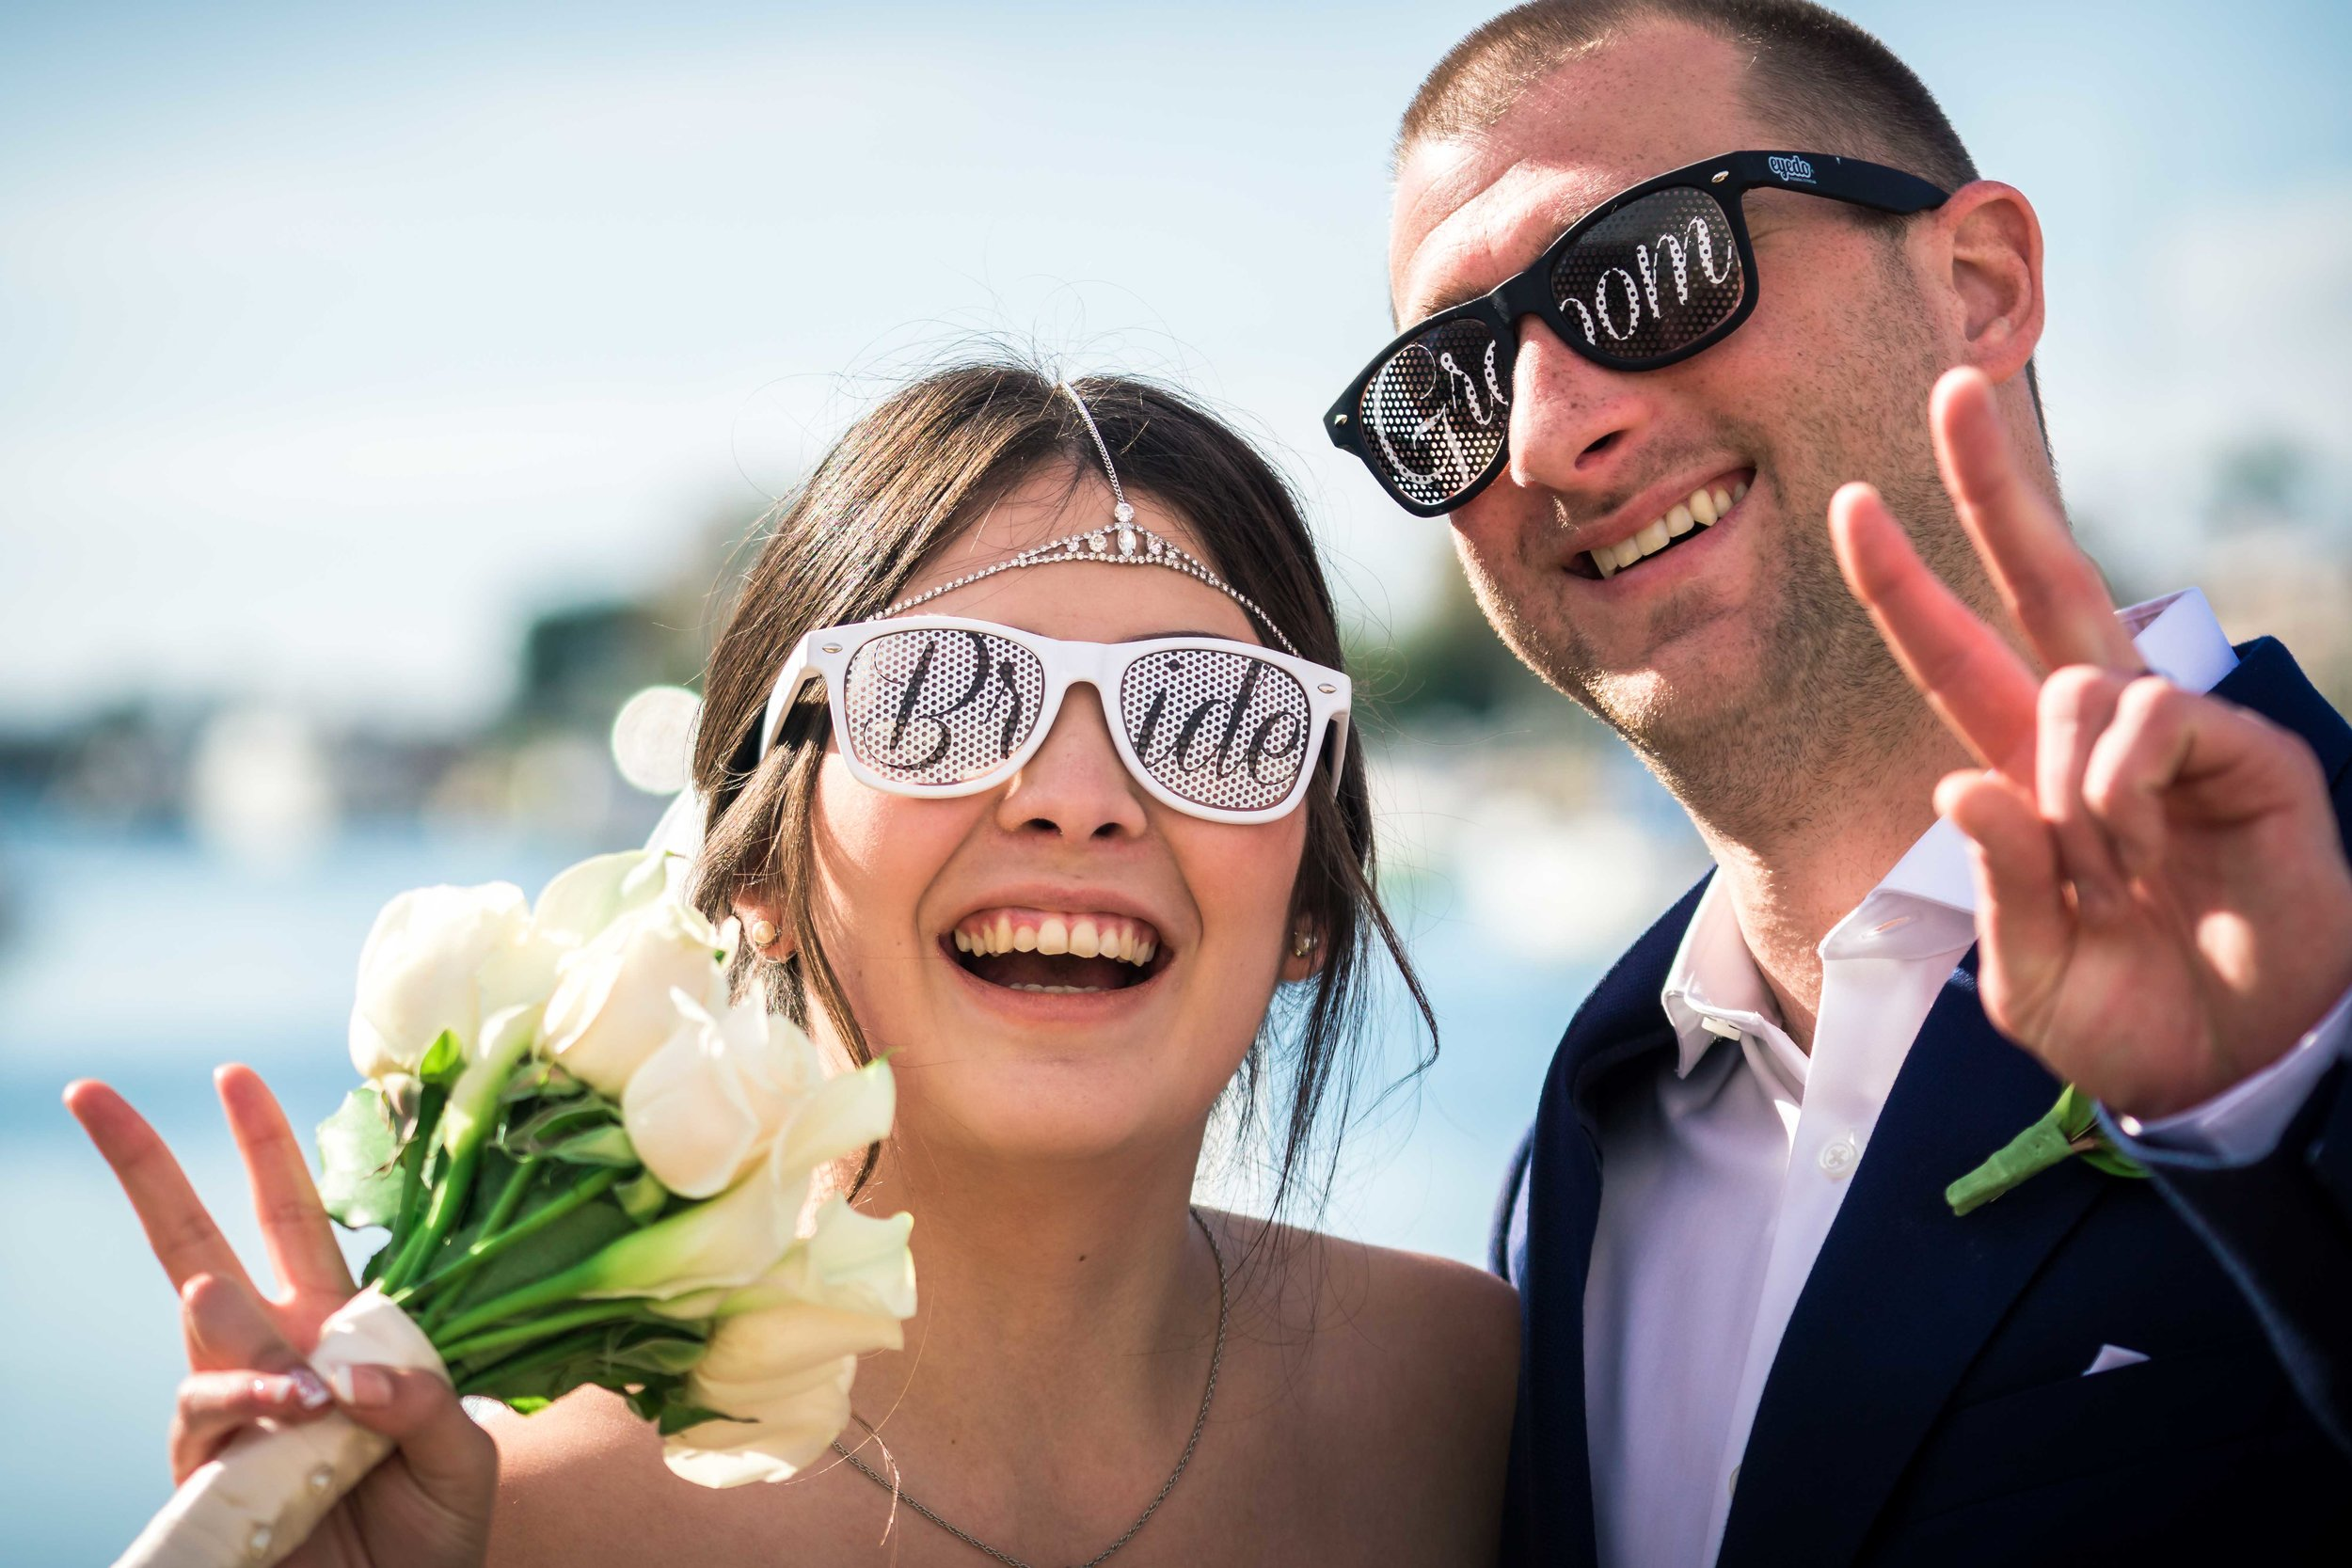 Bride and groom wearing sunglasses and being goofy